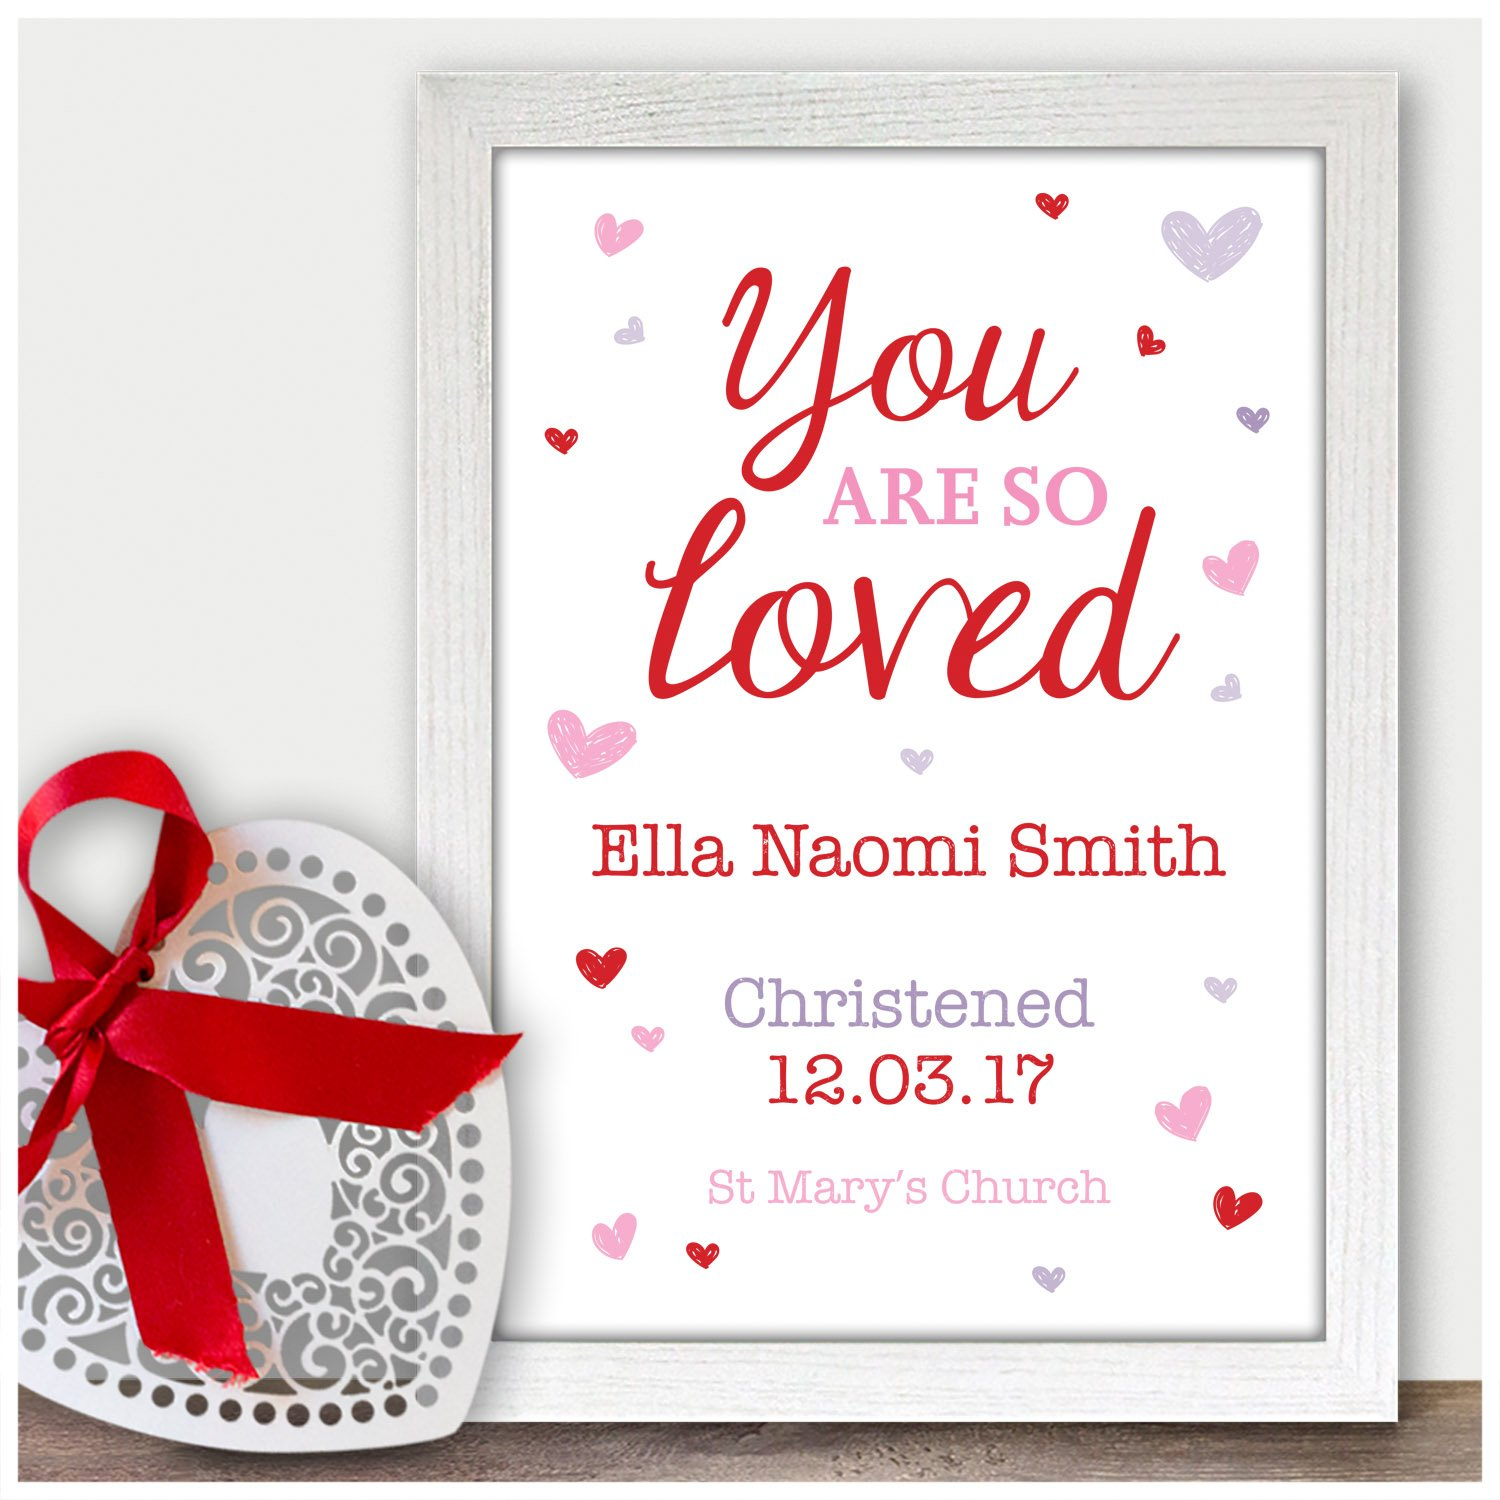 Personalised You Are So Loved Godson Goddaughter Gifts - Christening Baptism Naming Day Gift Present - Handmade Custom Christening Gifts for Baby Girls Boys ...